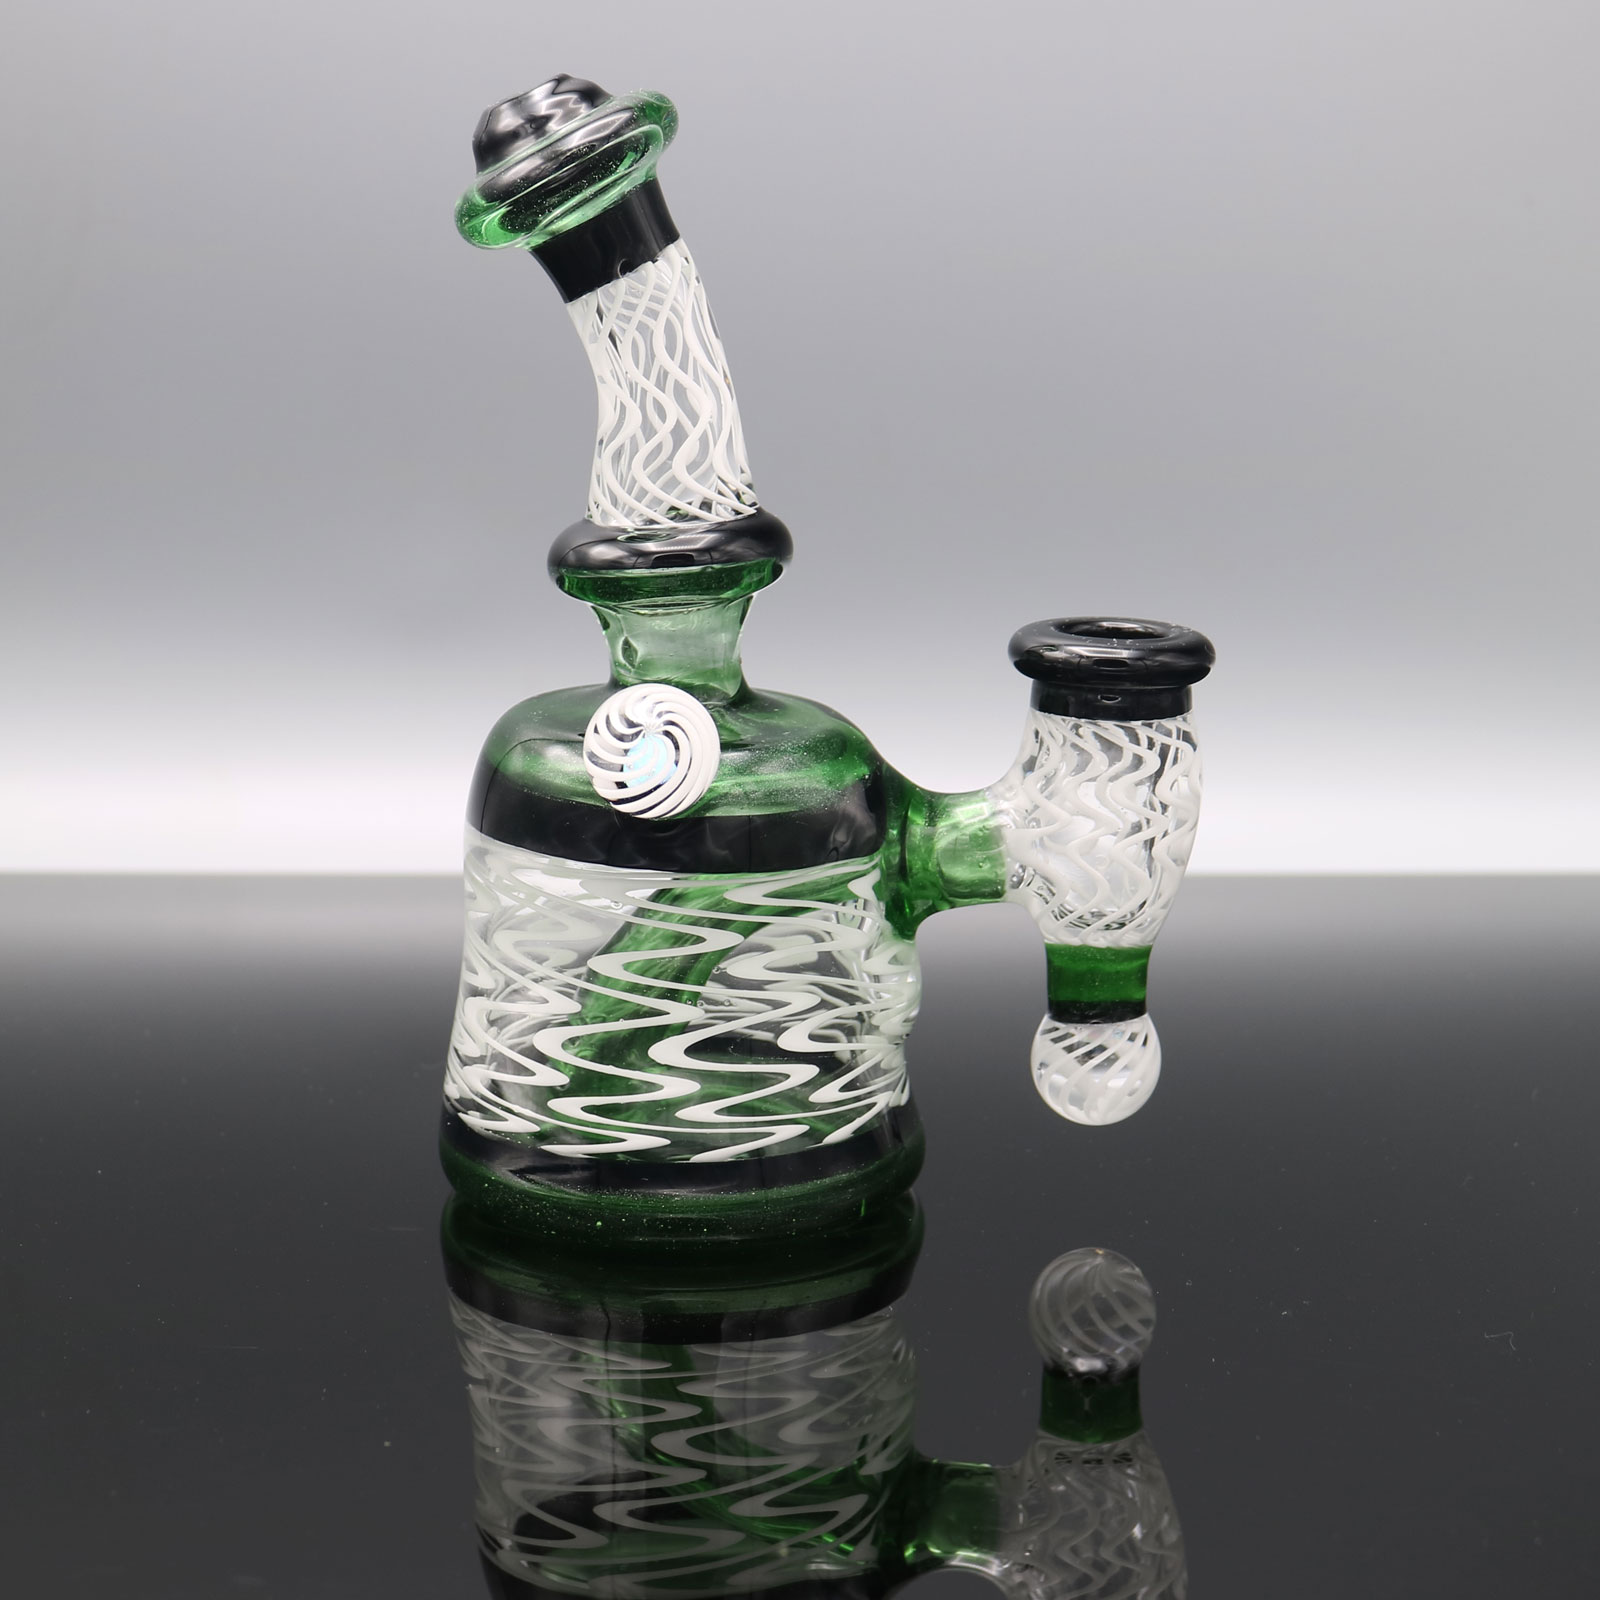 Chappell Glass – Green and White Banger Hanger